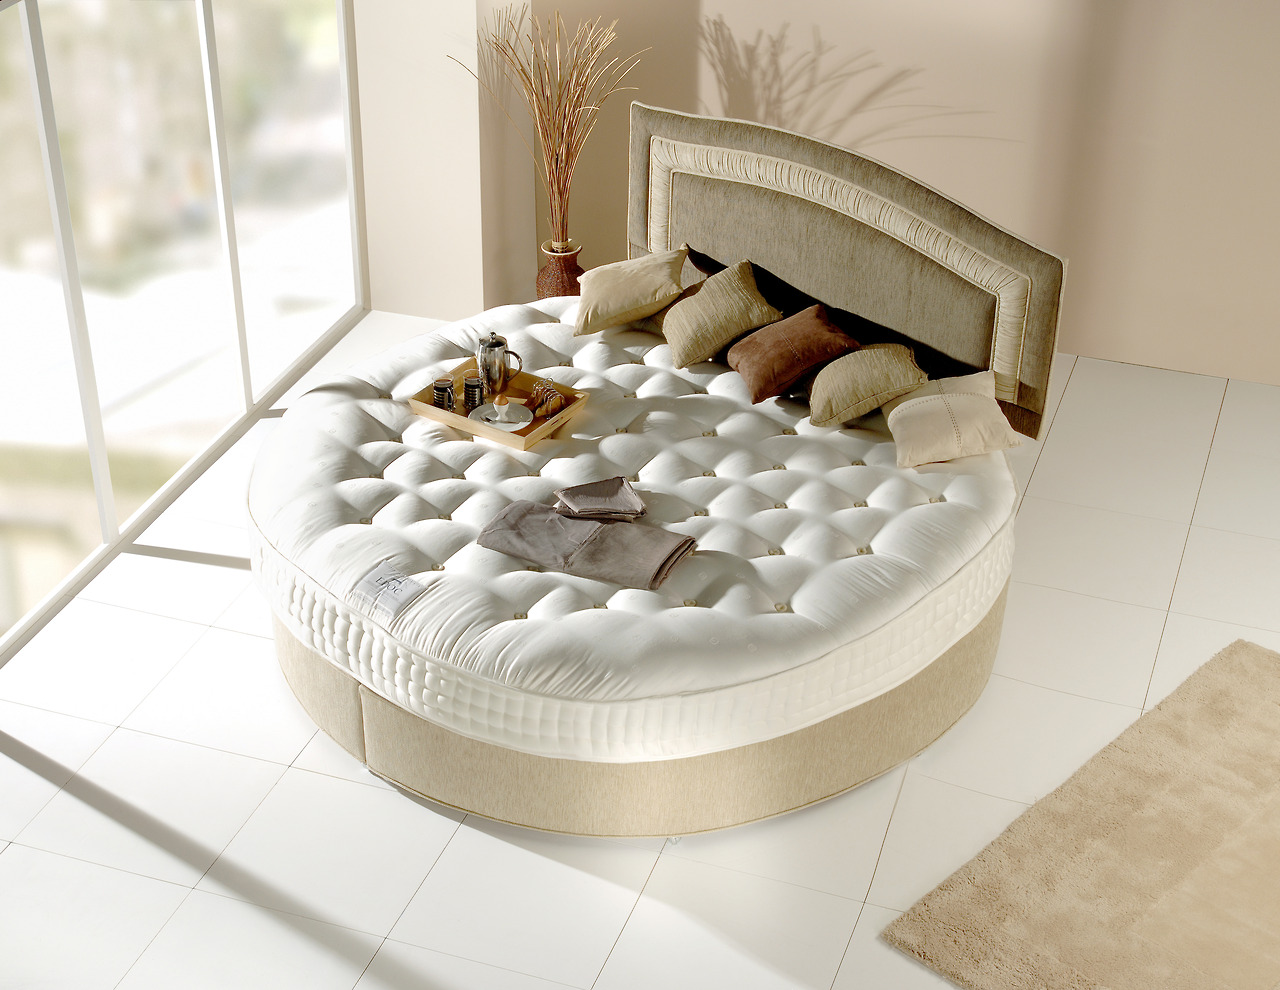 plus frames ikea ideas and round sets do of frame in rou on then ki bed queen picture circular mattress pics size s elegant photo sale for ique your bedroom make fancy sweet how much fresh to large beds with full